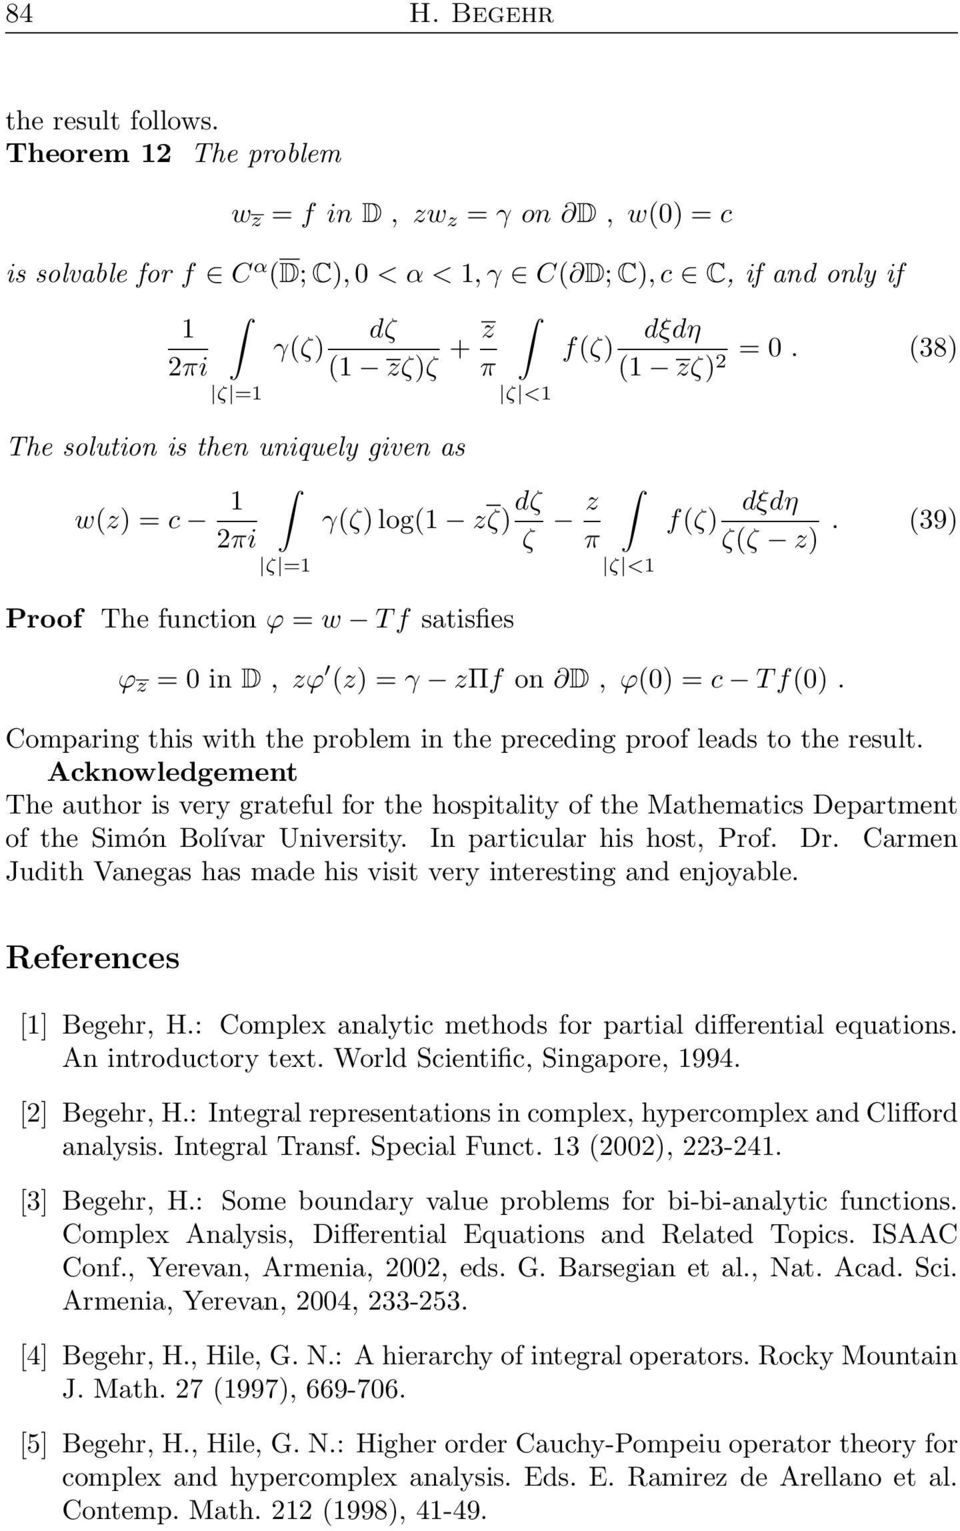 Comparing this with the problem in the preceding proof leads to the result.